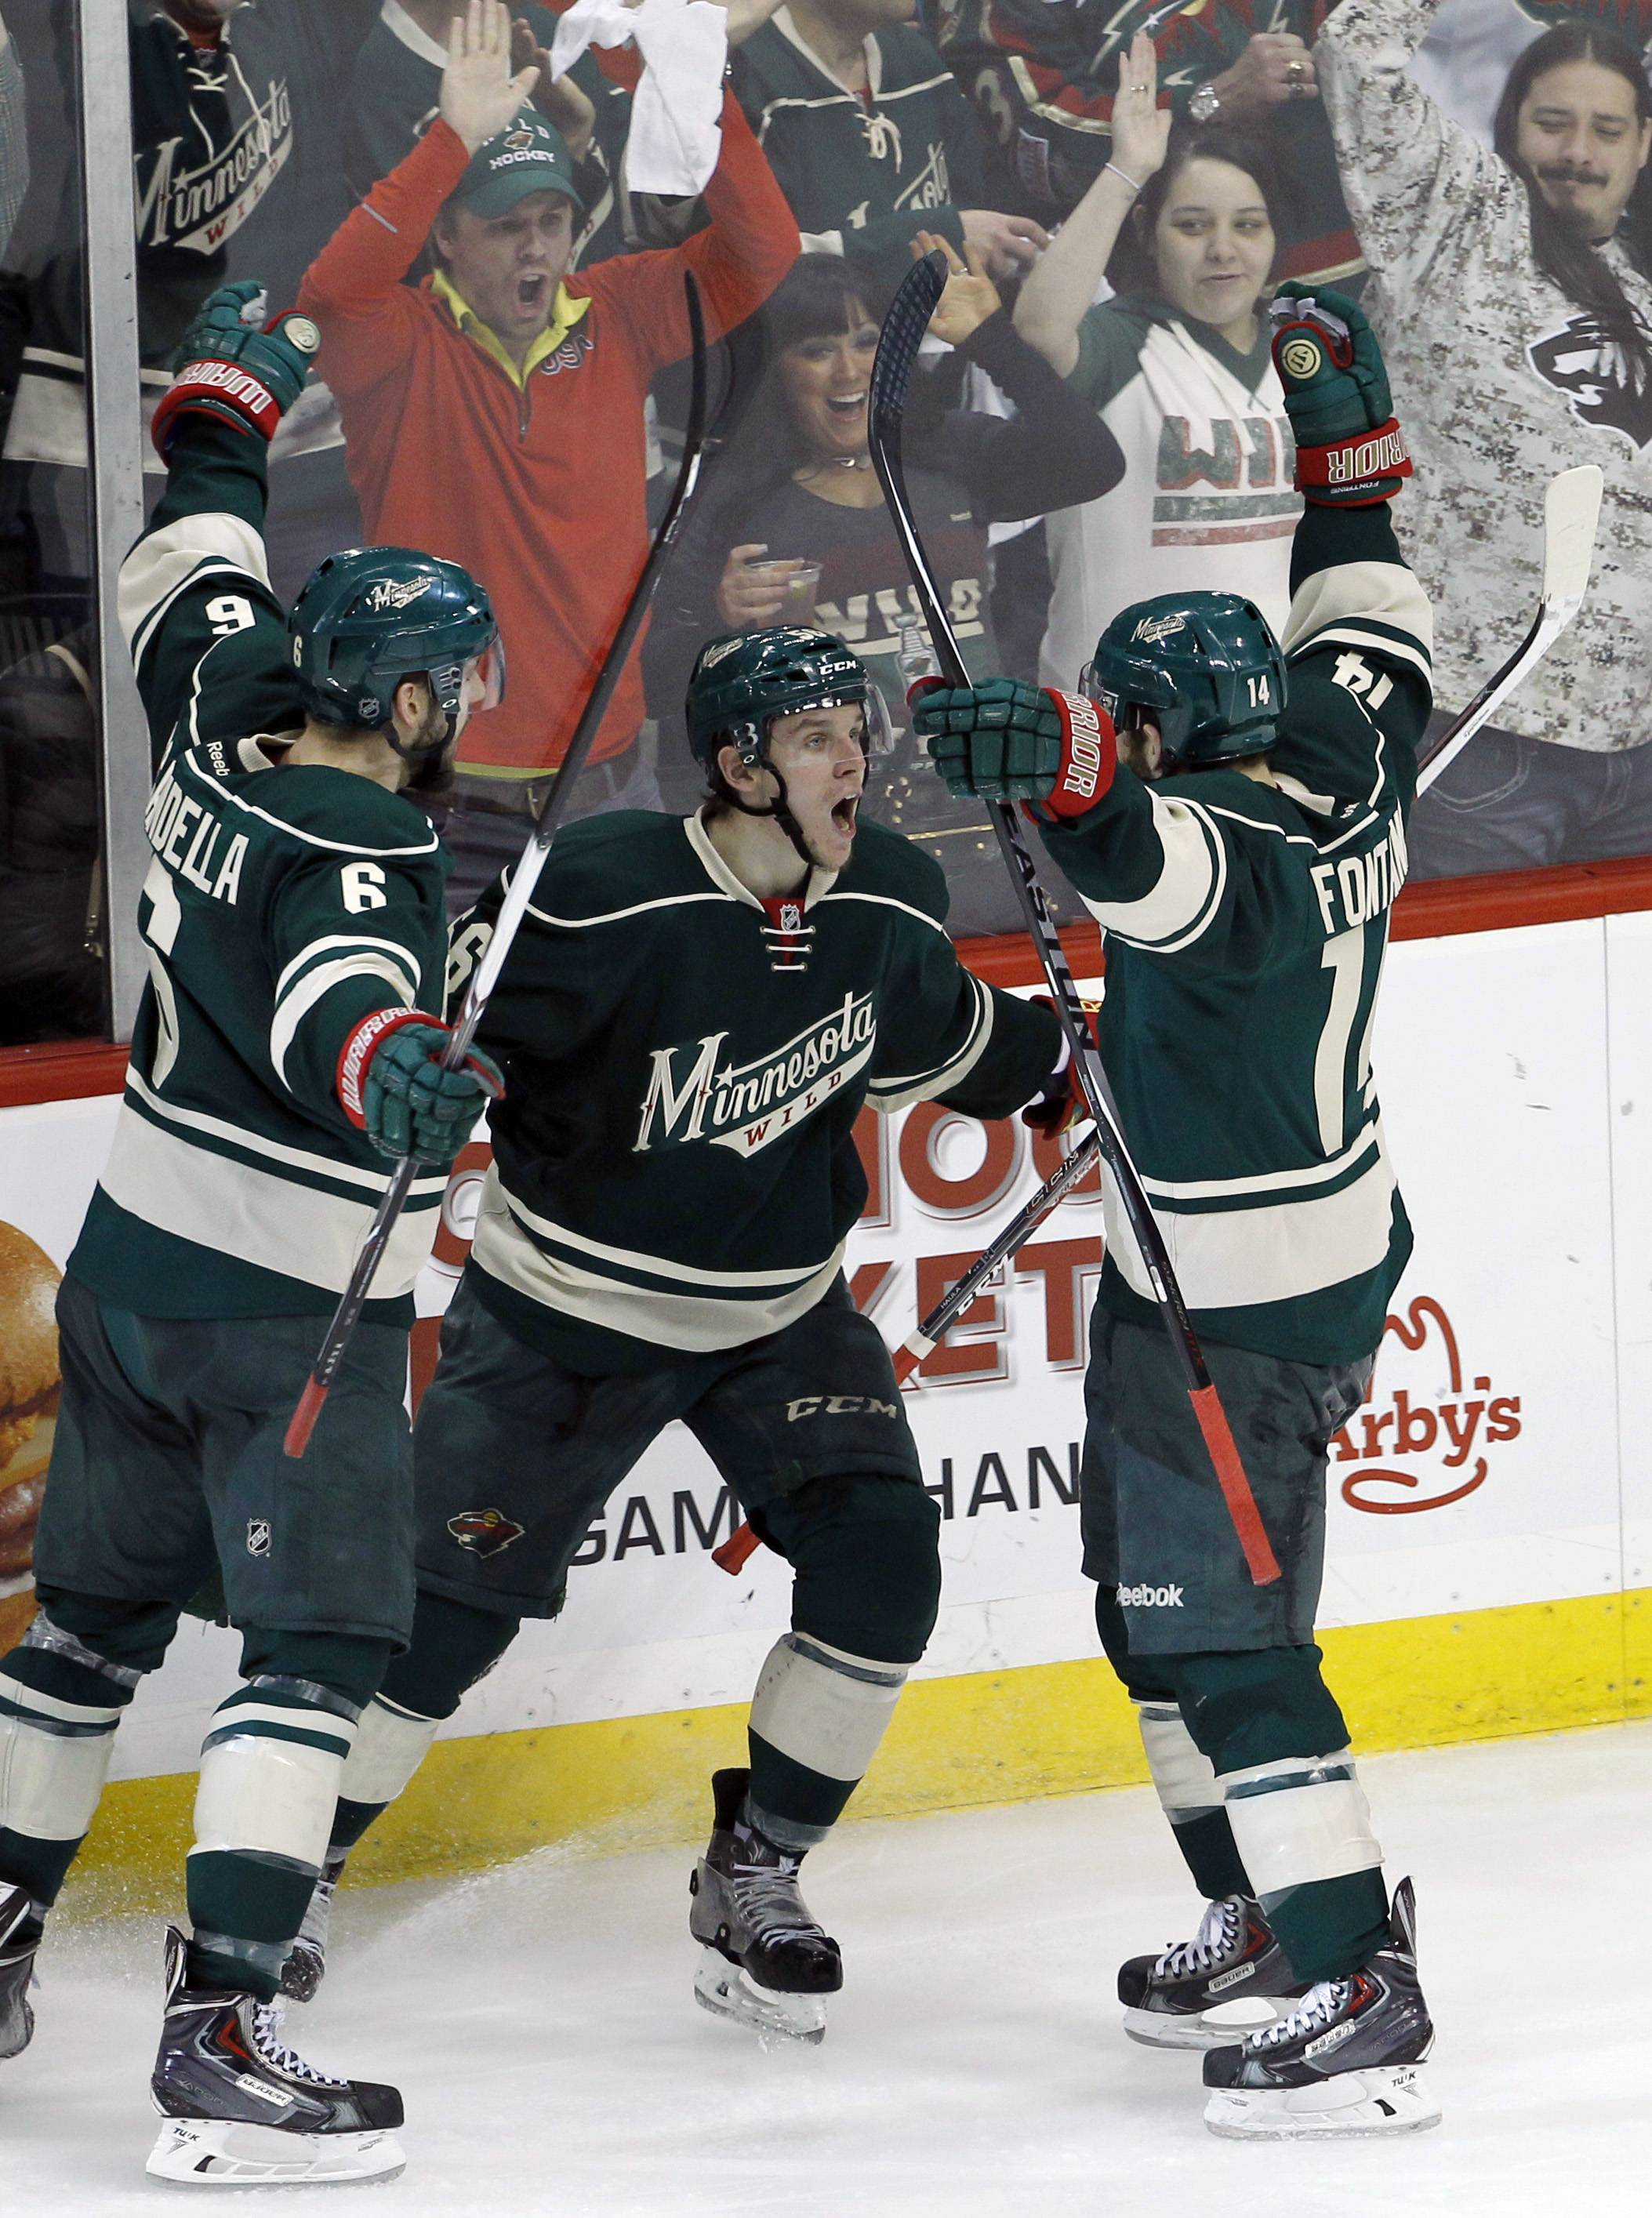 Minnesota Wild left wing Erik Haula, center, of Finland, celebrates with teammates Marco Scandella (6) and Justin Fontaine, right, after scoring on Chicago Blackhawks goalie Corey Crawford during the third period of Game 3 of an NHL hockey second-round playoff series Tuesday in St. Paul, Minn. The Wild won 4-0.